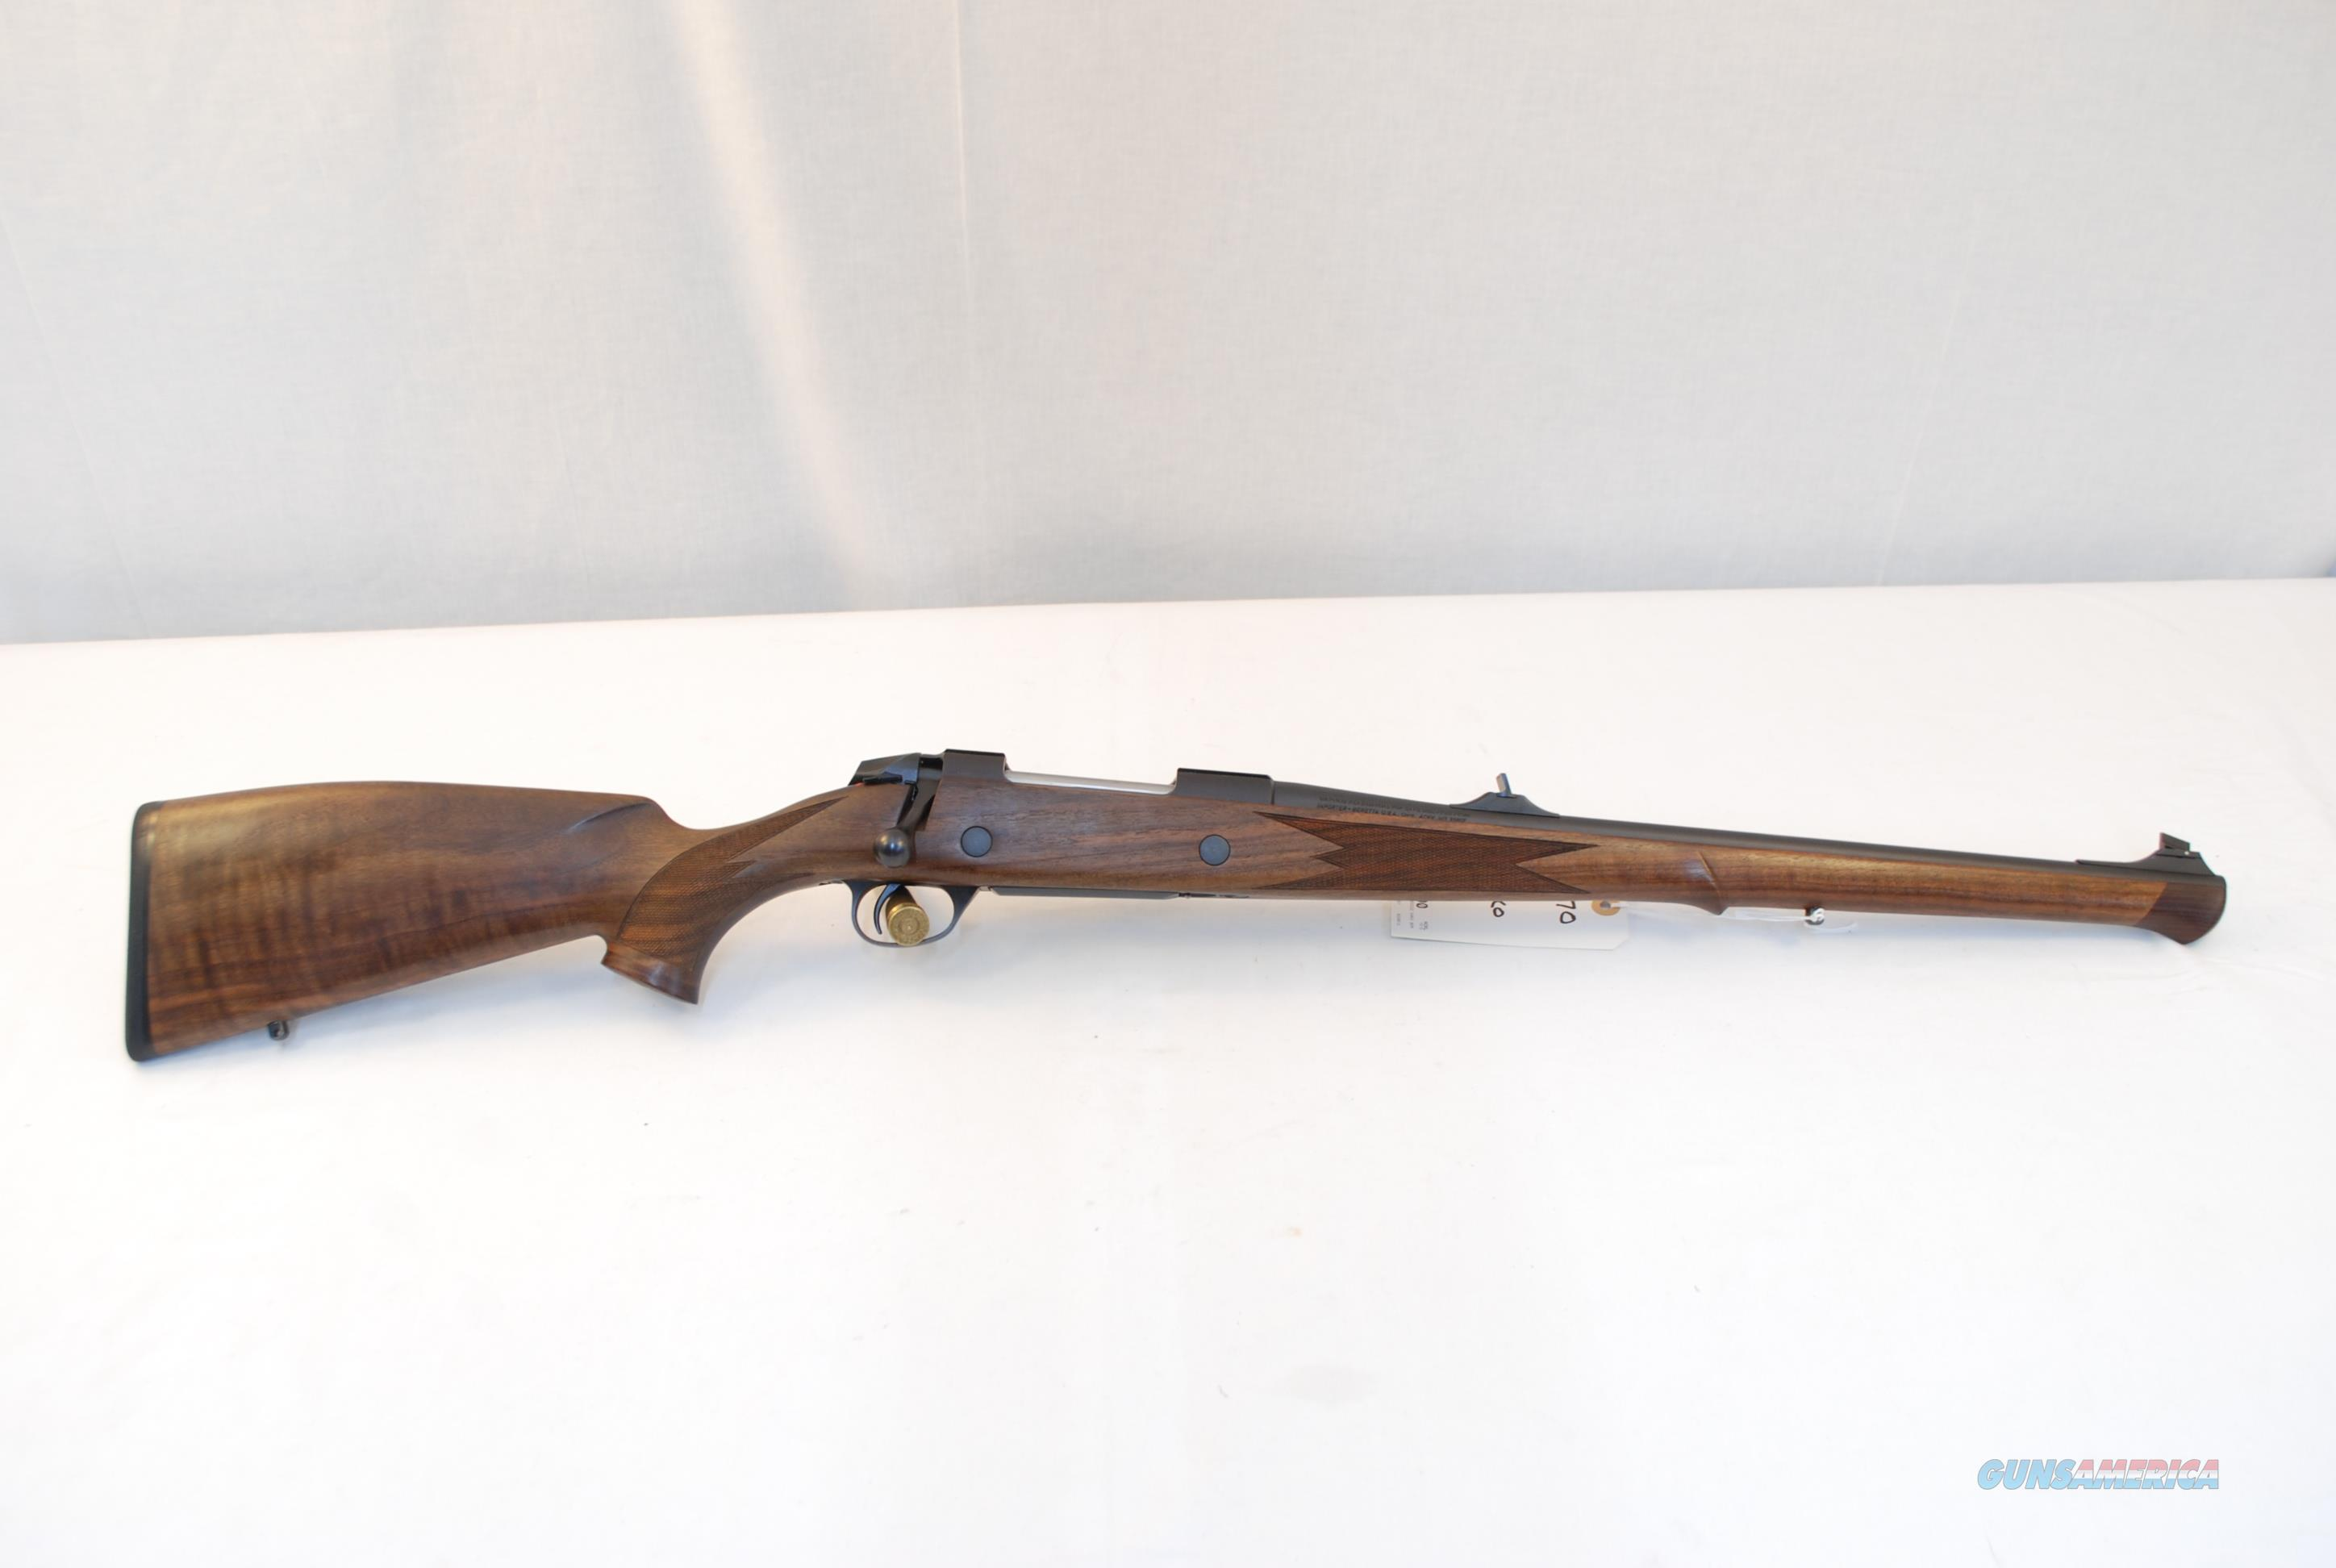 Sako 85 Bavarian Carbine .270 Win  Guns > Rifles > Sako Rifles > M85 Series